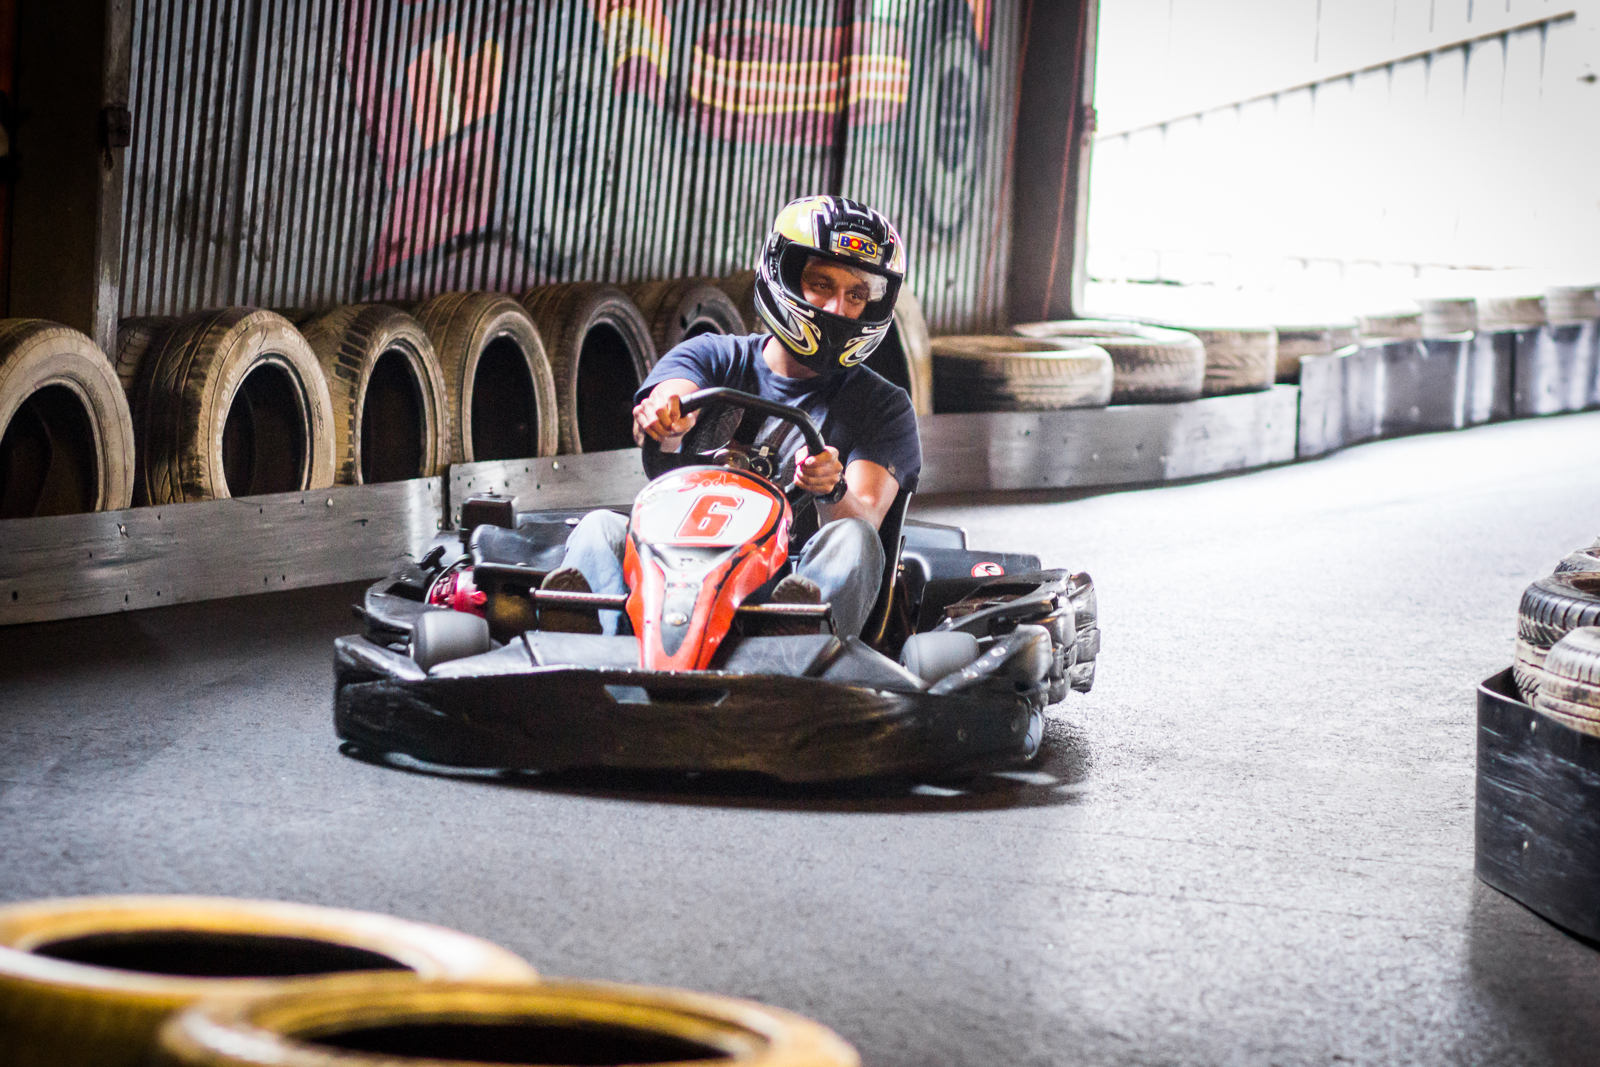 Stag Go cart